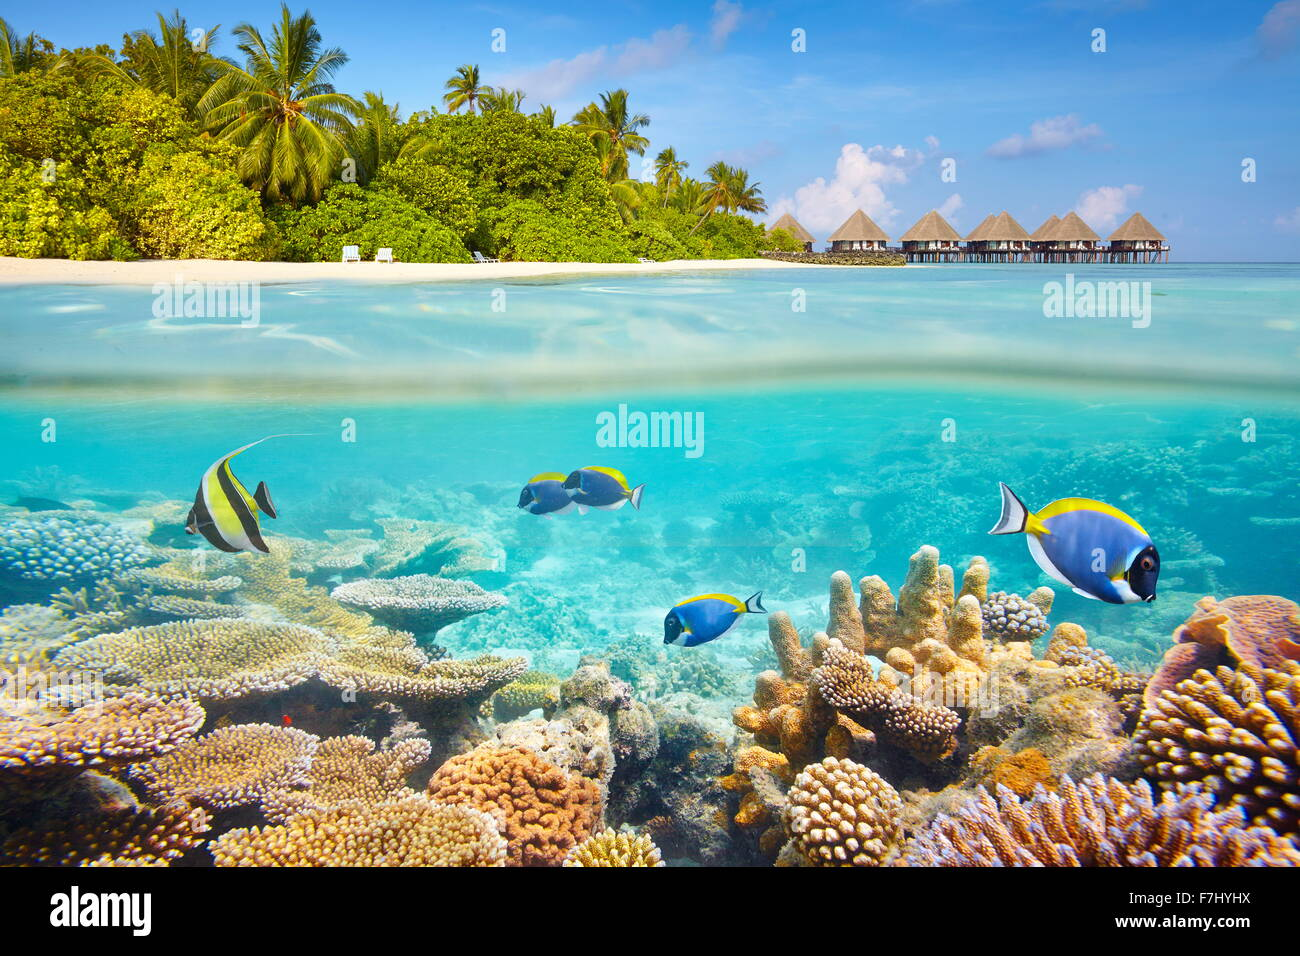 Tropical underwater view with reef and fish, Maldives Island Stock Photo